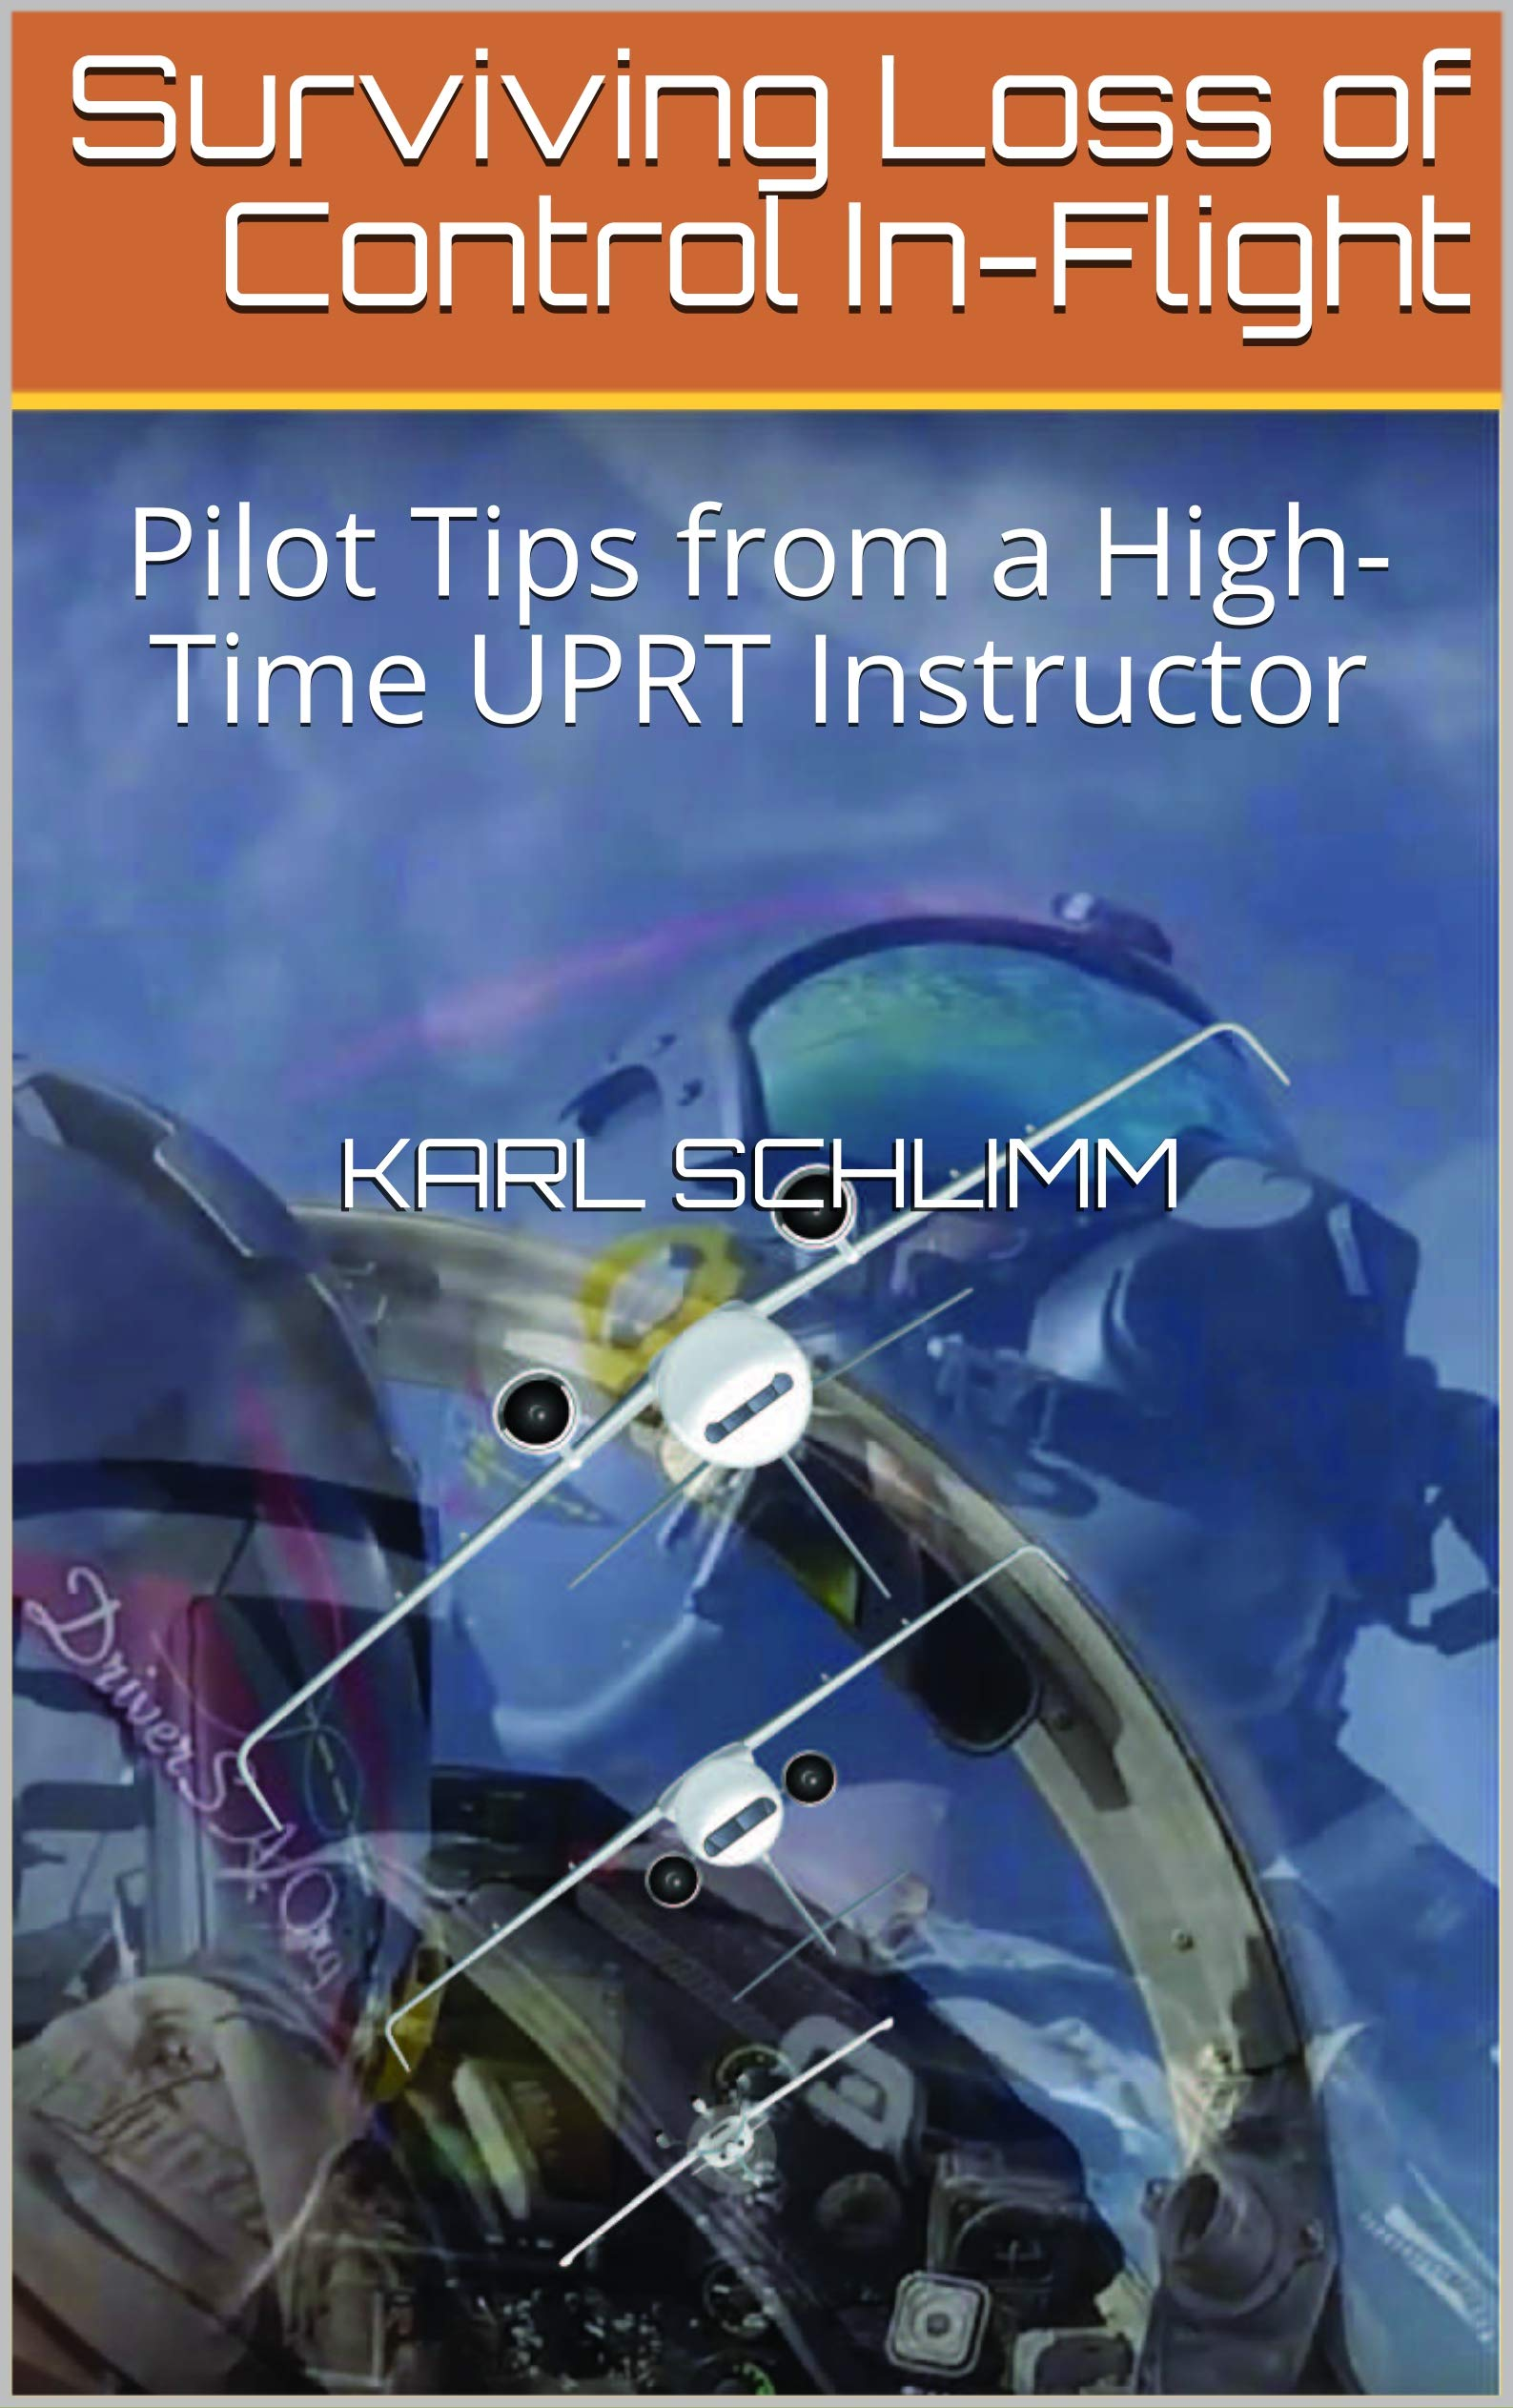 Surviving Loss of Control In-Flight: Pilot Tips from a High-Time UPRT Instructor